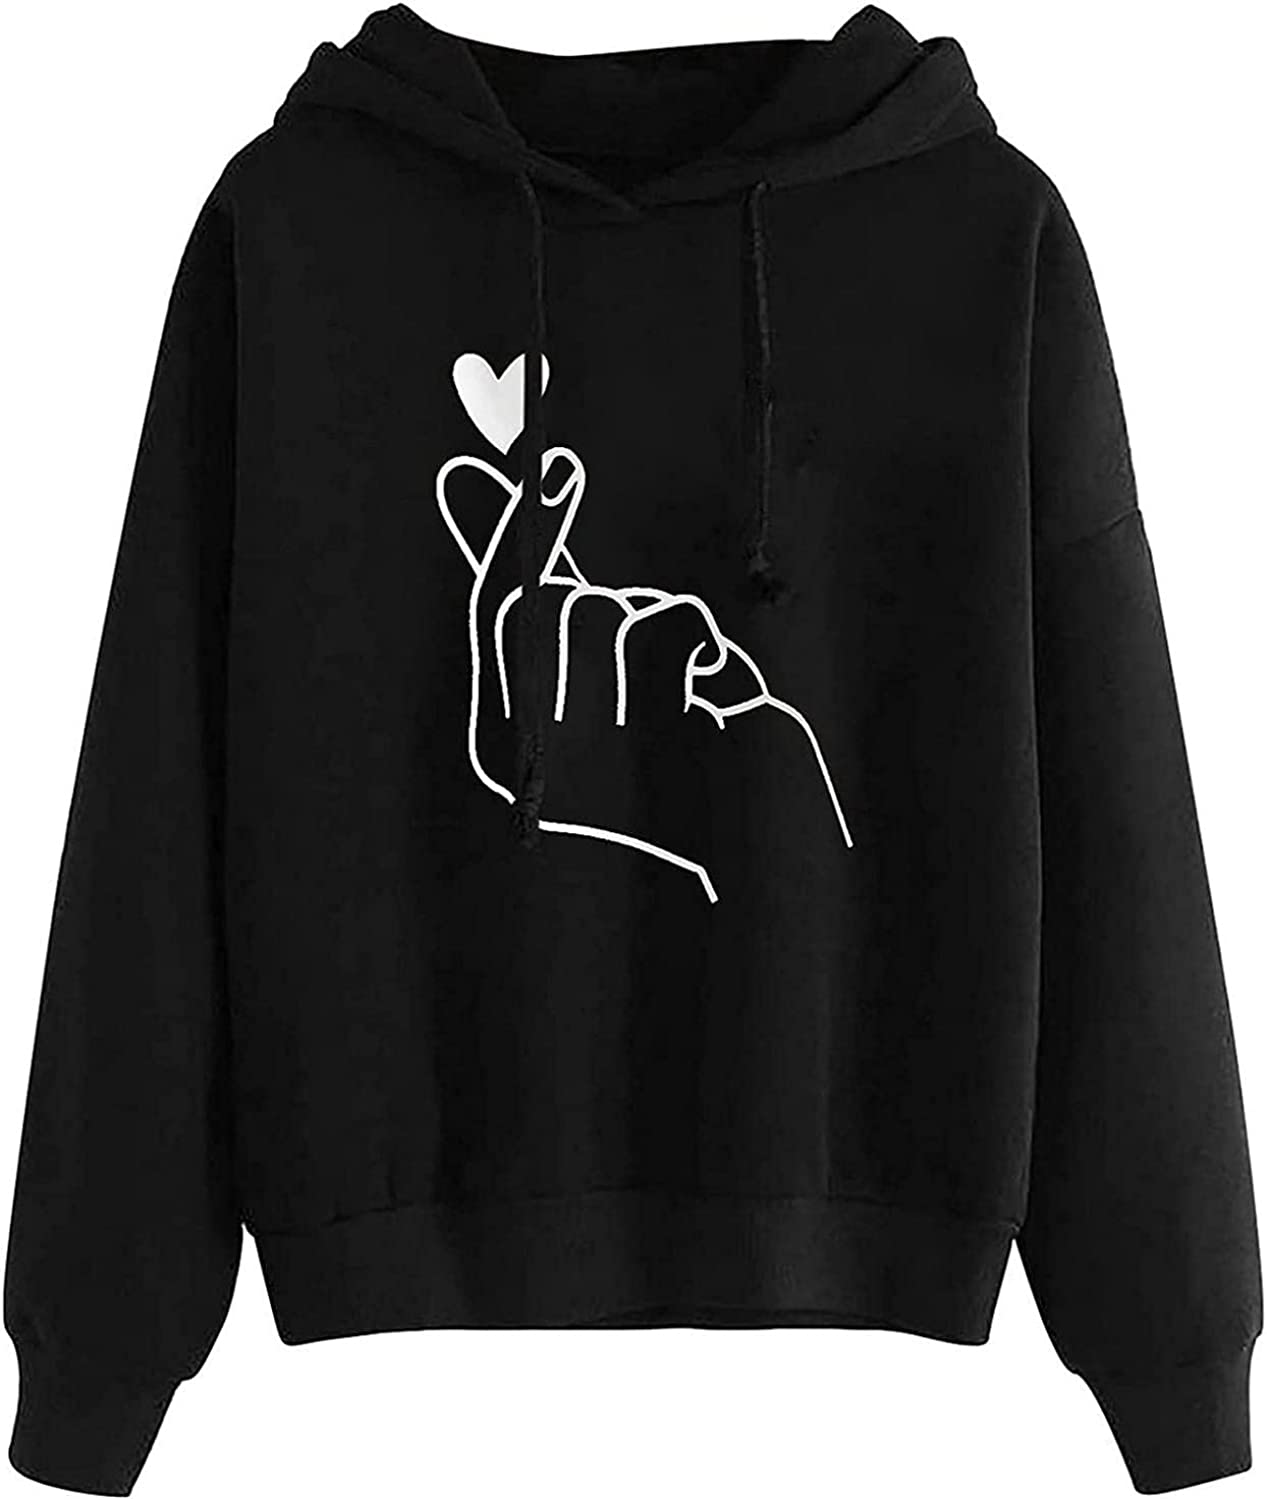 UQGHQO Hoodies for Women, Women's Heart Print Comfy Hoodies Bright Color Long Sleeve Sweatshirt Loose Fit Pullover Tops